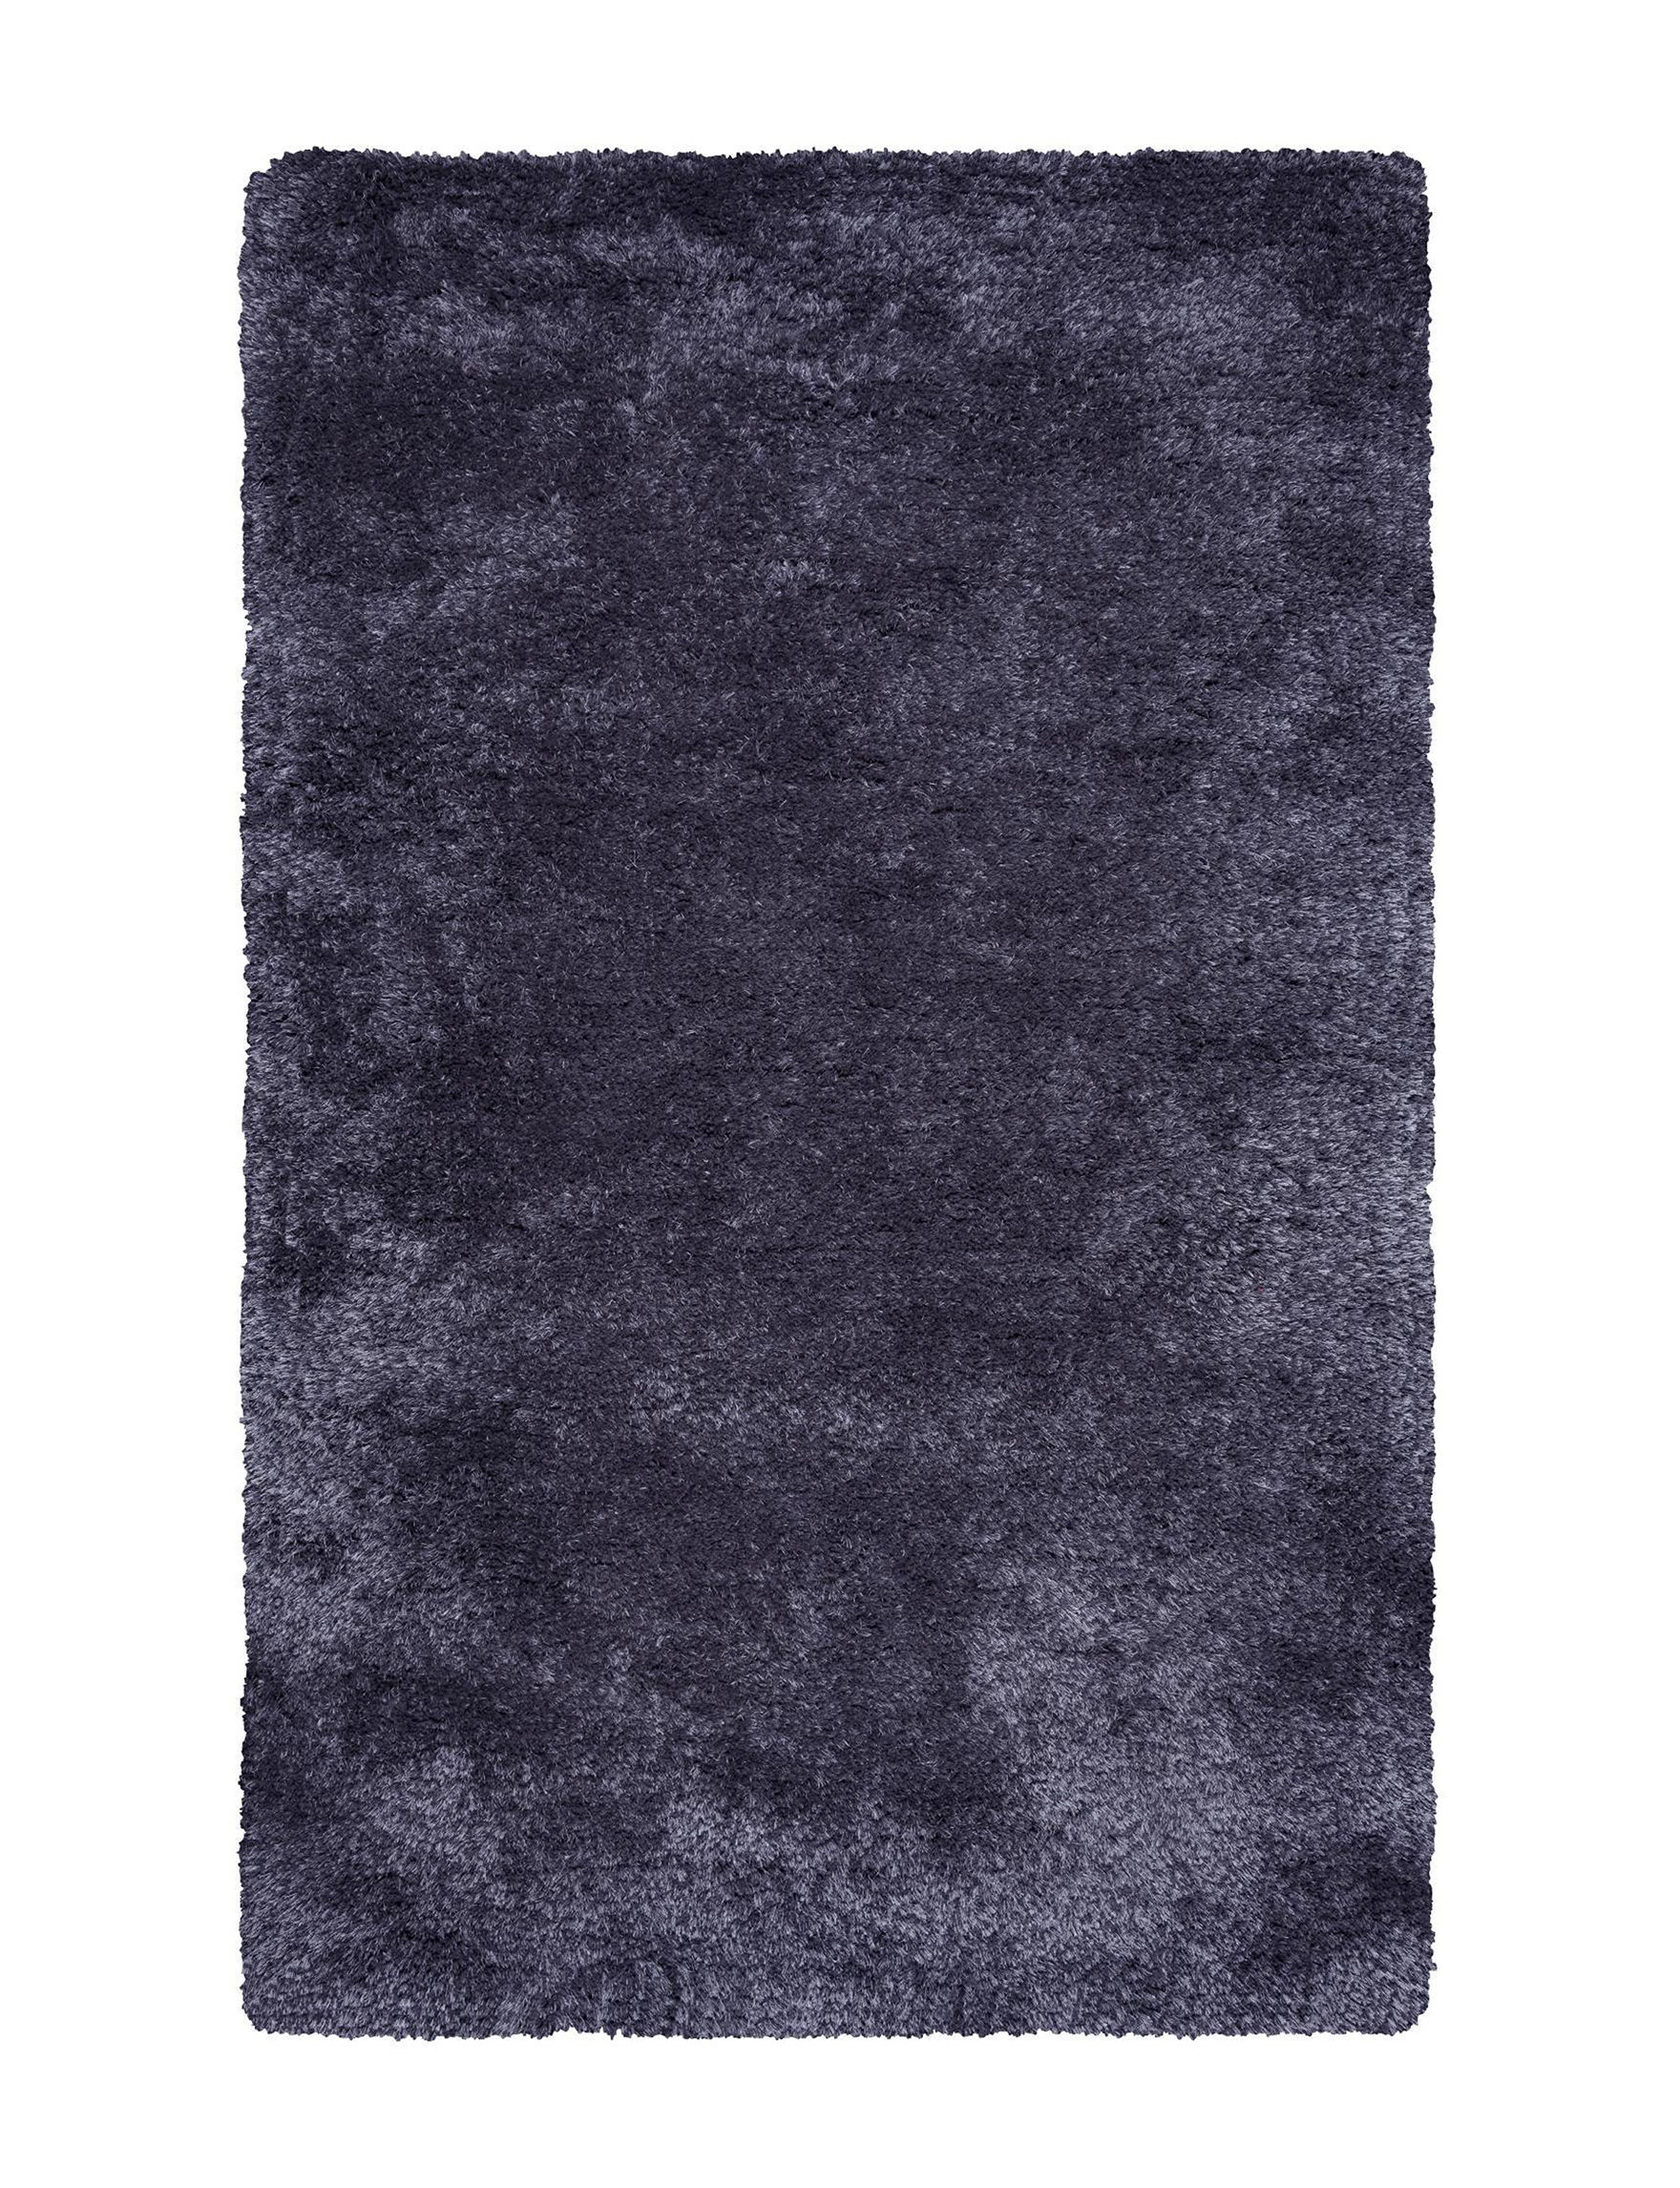 Rizzy Home Charcoal Area Rugs Rugs